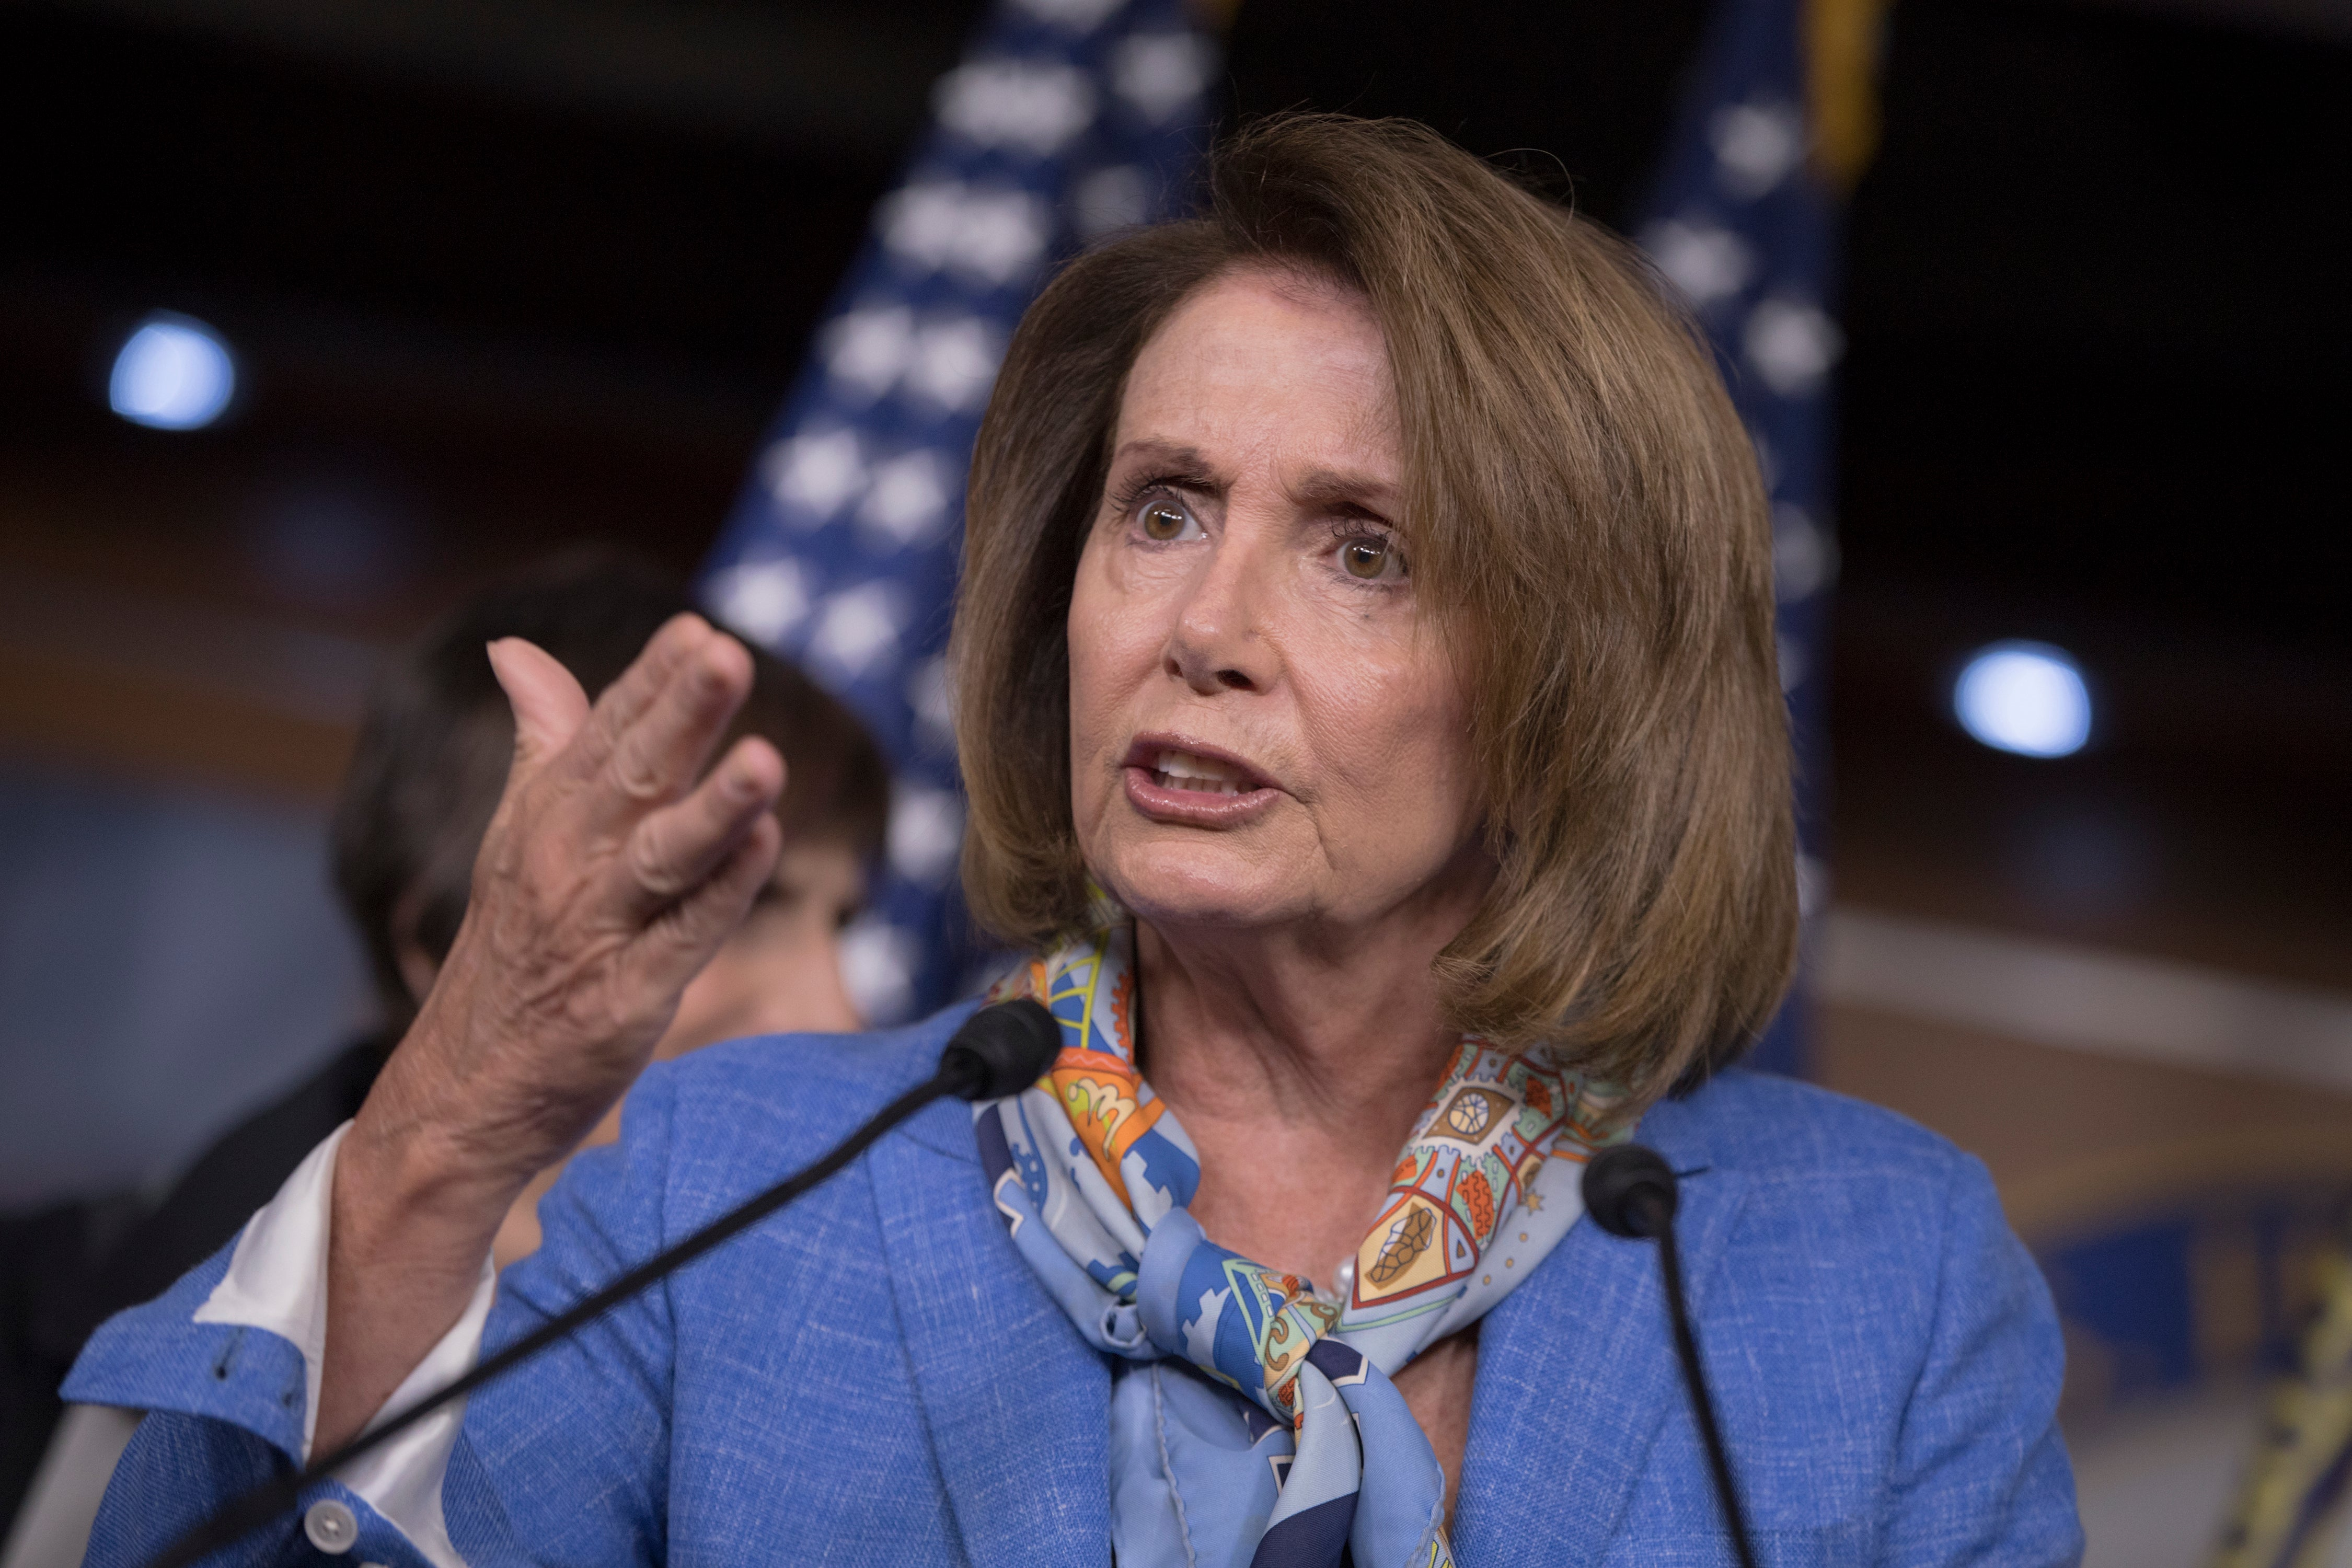 Personal Information Of Nearly 200 US Democrats Leaked In Latest Hack